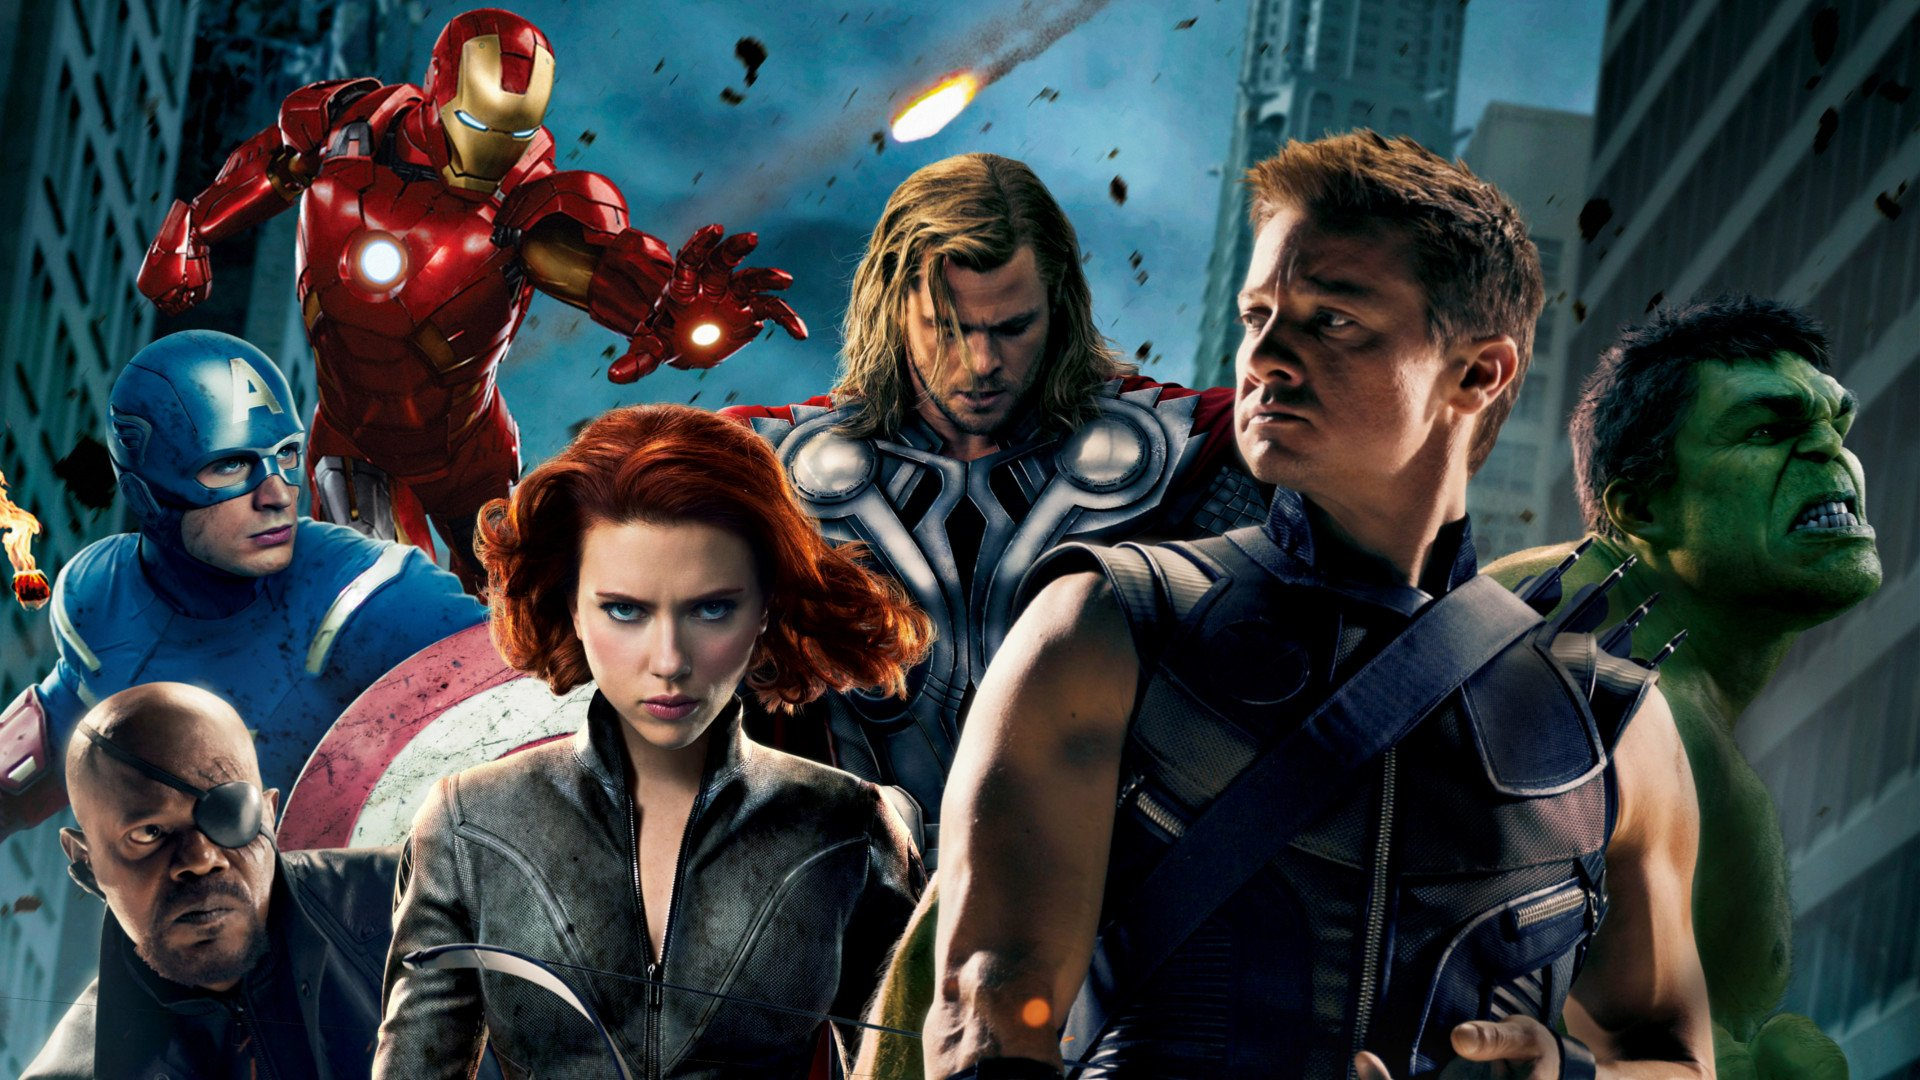 Movie - The Avengers  Jeremy Renner Hawkeye Hulk Iron Man Captain America Thor Chris Hemsworth Black Widow Scarlett Johansson Chris Evans Nick Fury Samuel L. Jackson Marvel Comics Avengers Natasha Romanoff Wallpaper